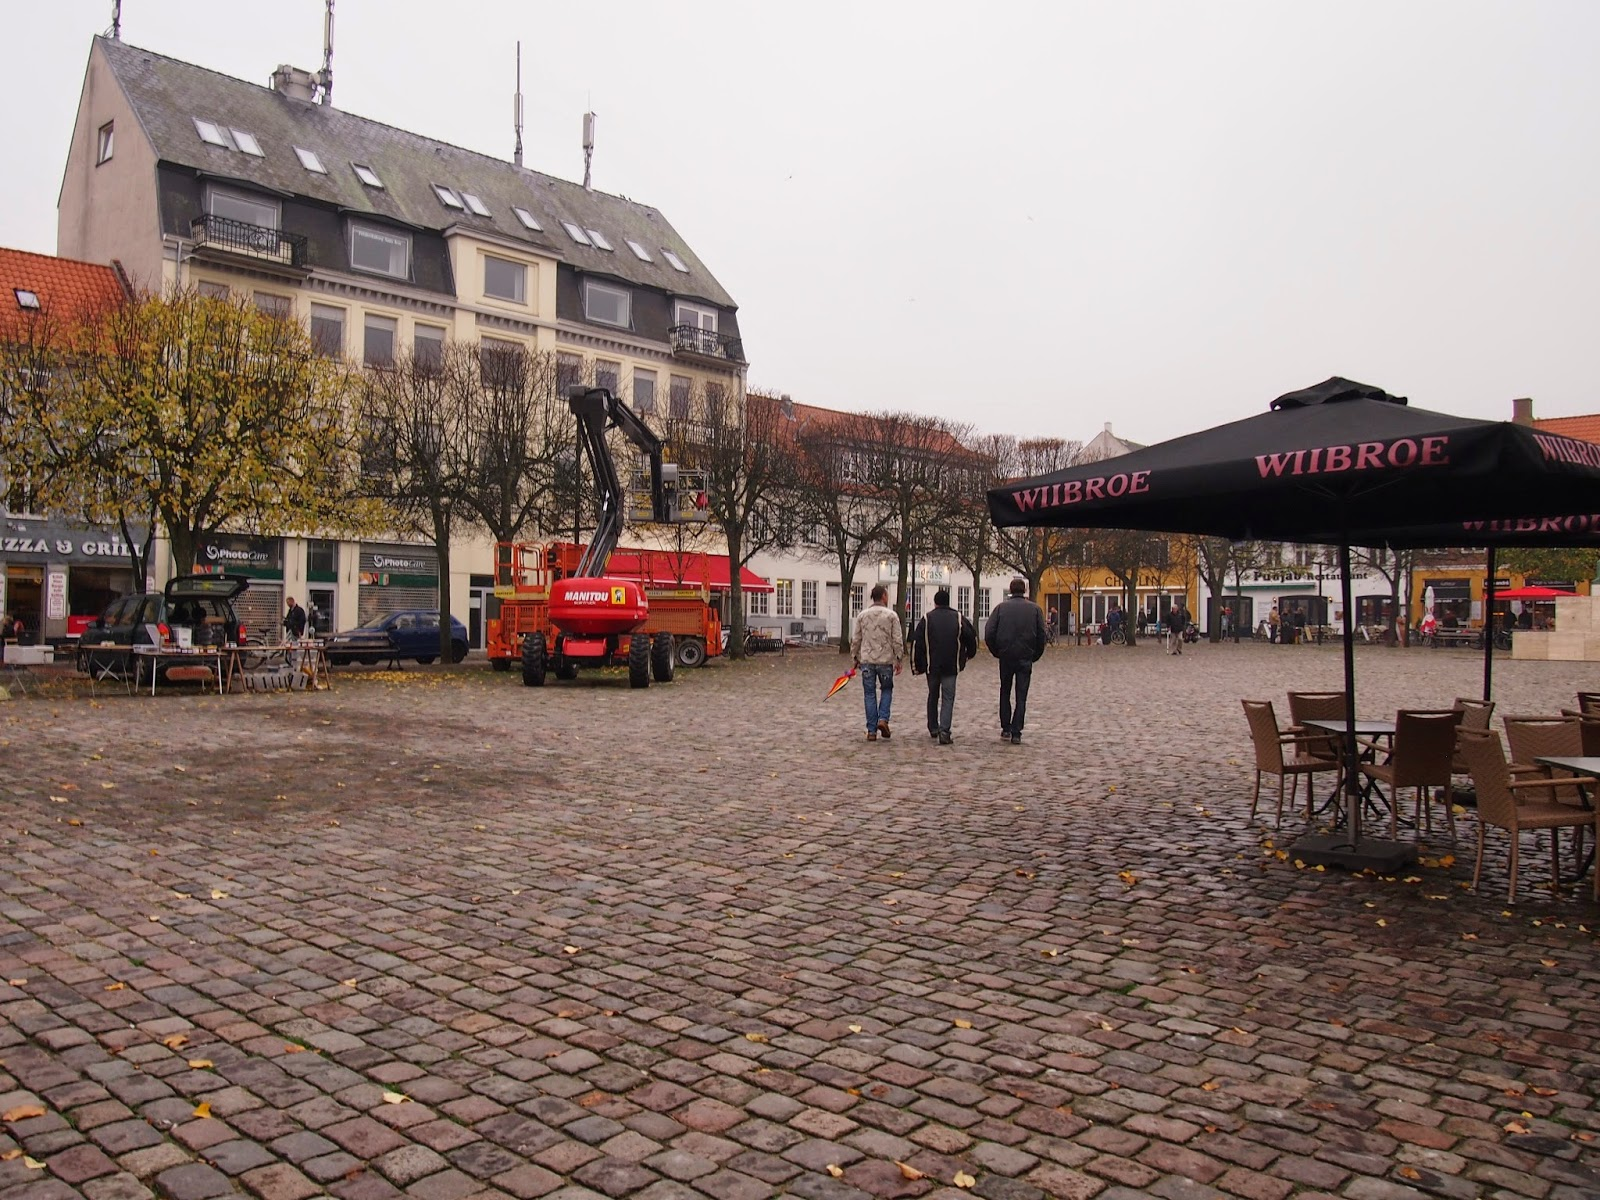 a town square in denmark